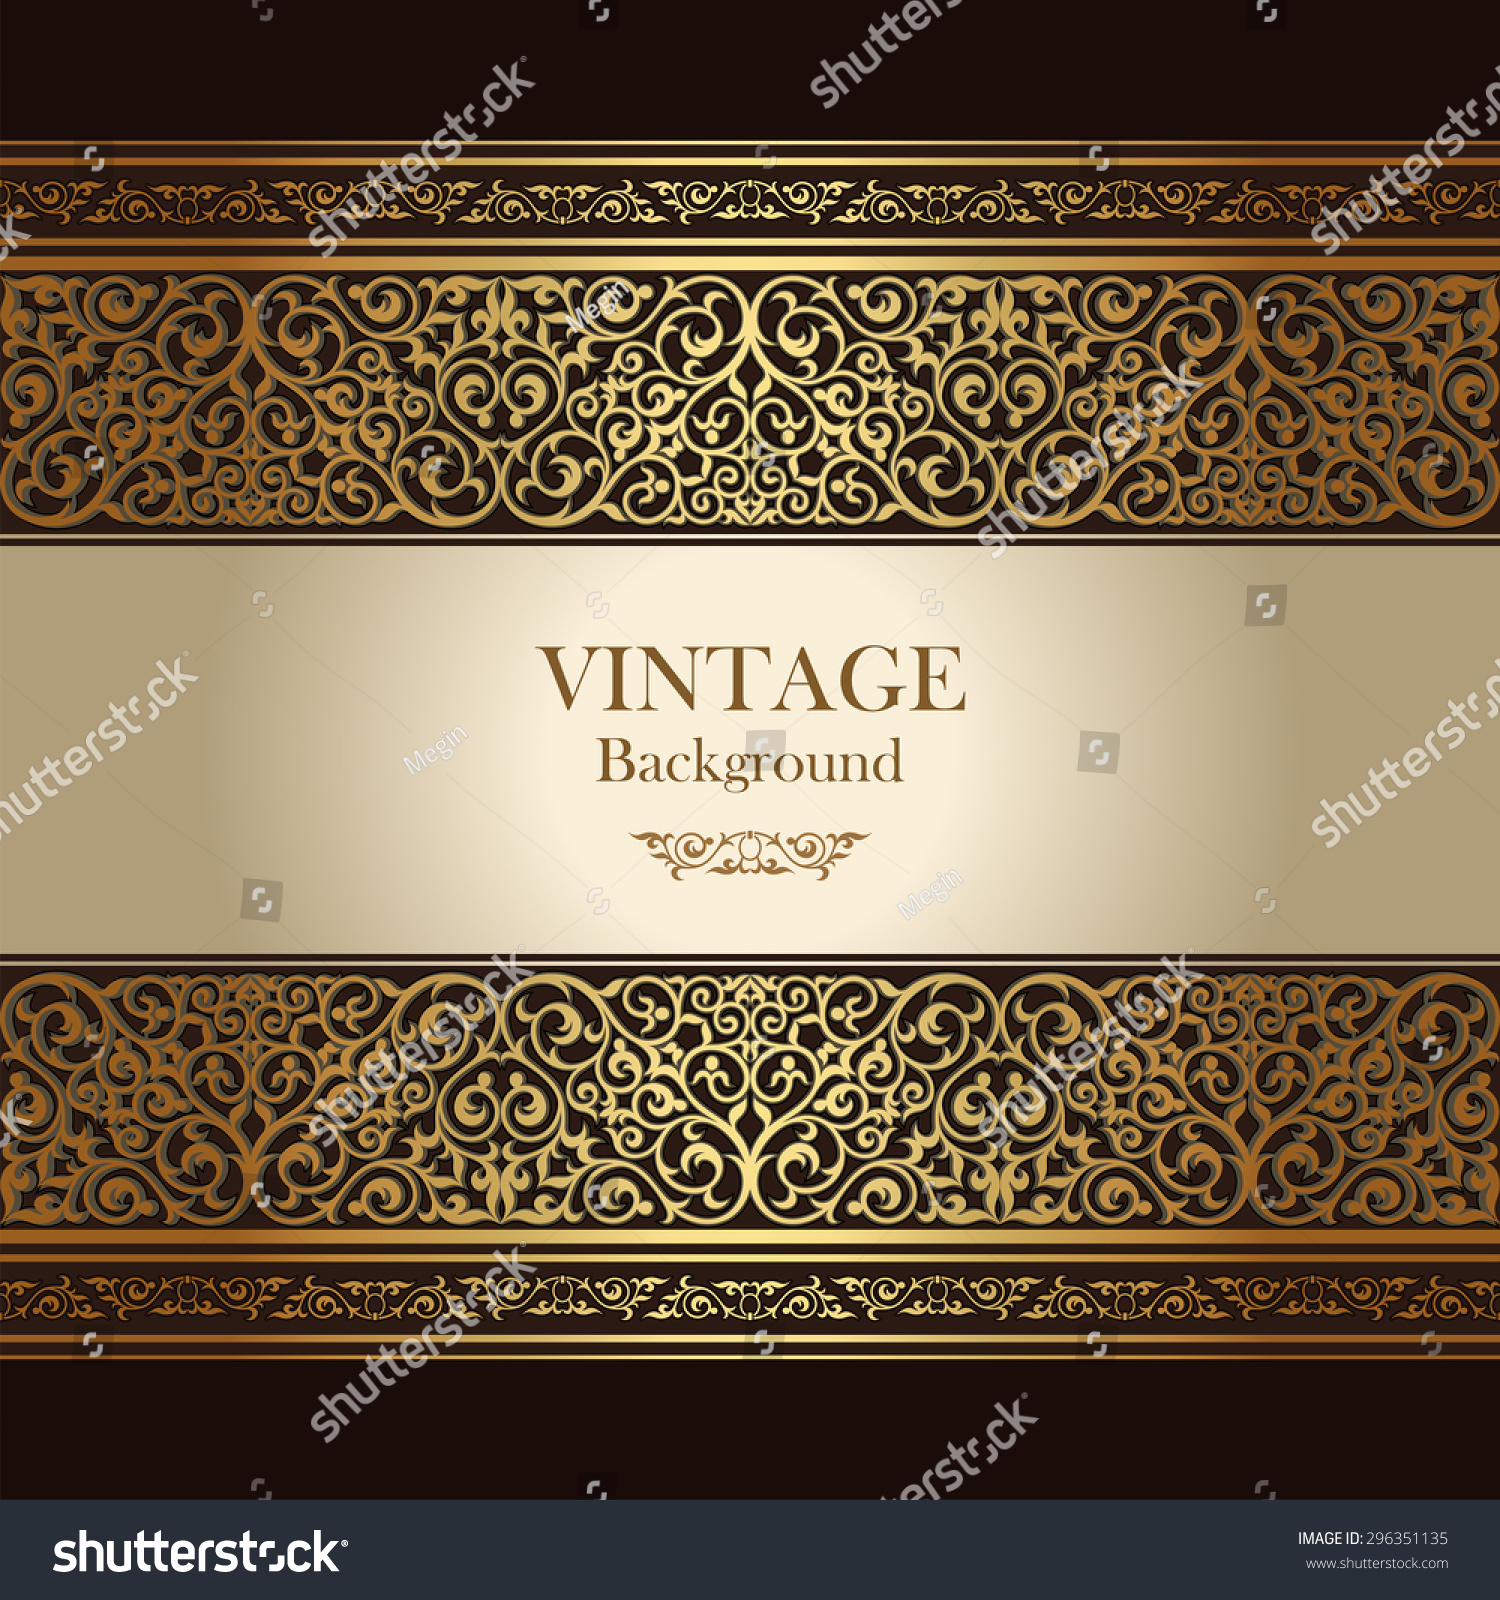 Arabic Book Cover Design Vector ~ Vintage background islamic style ornament ornamental stock